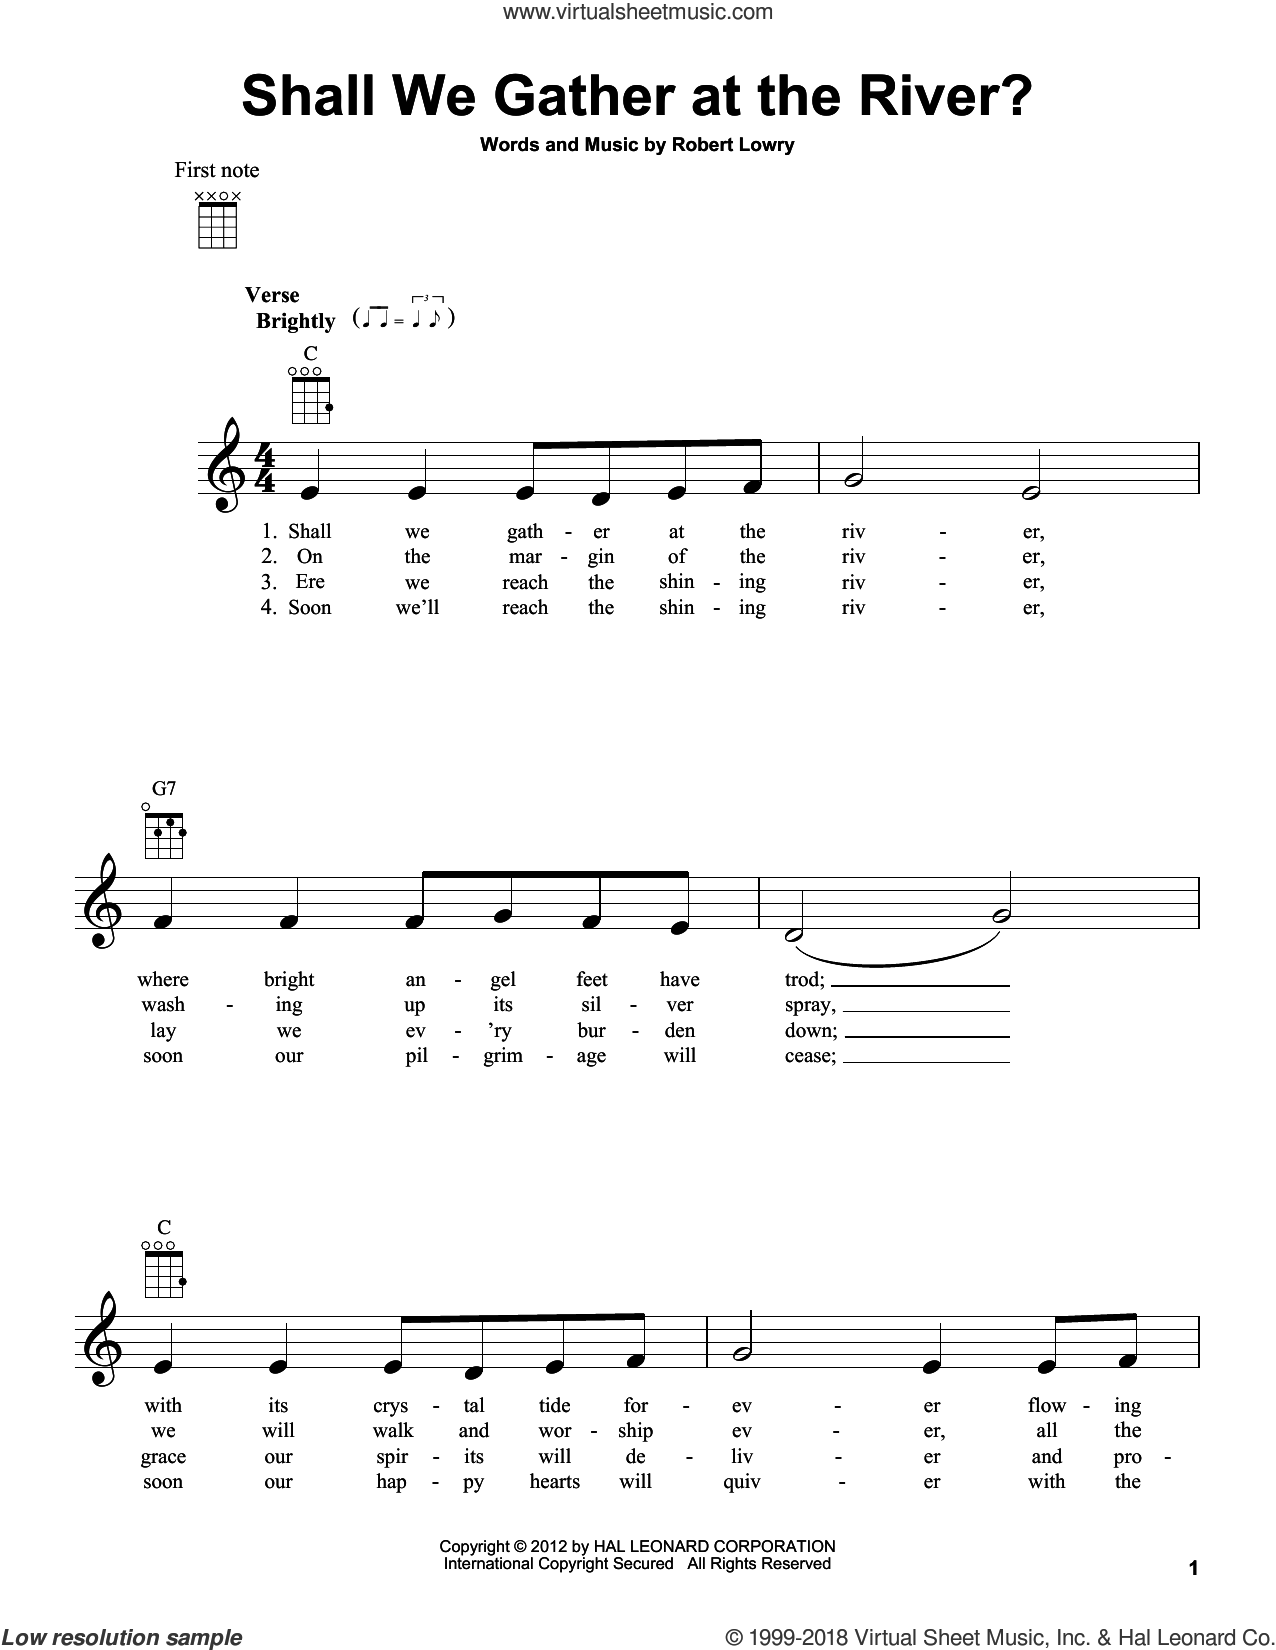 Shall We Gather At The River? sheet music for ukulele by Robert Lowry